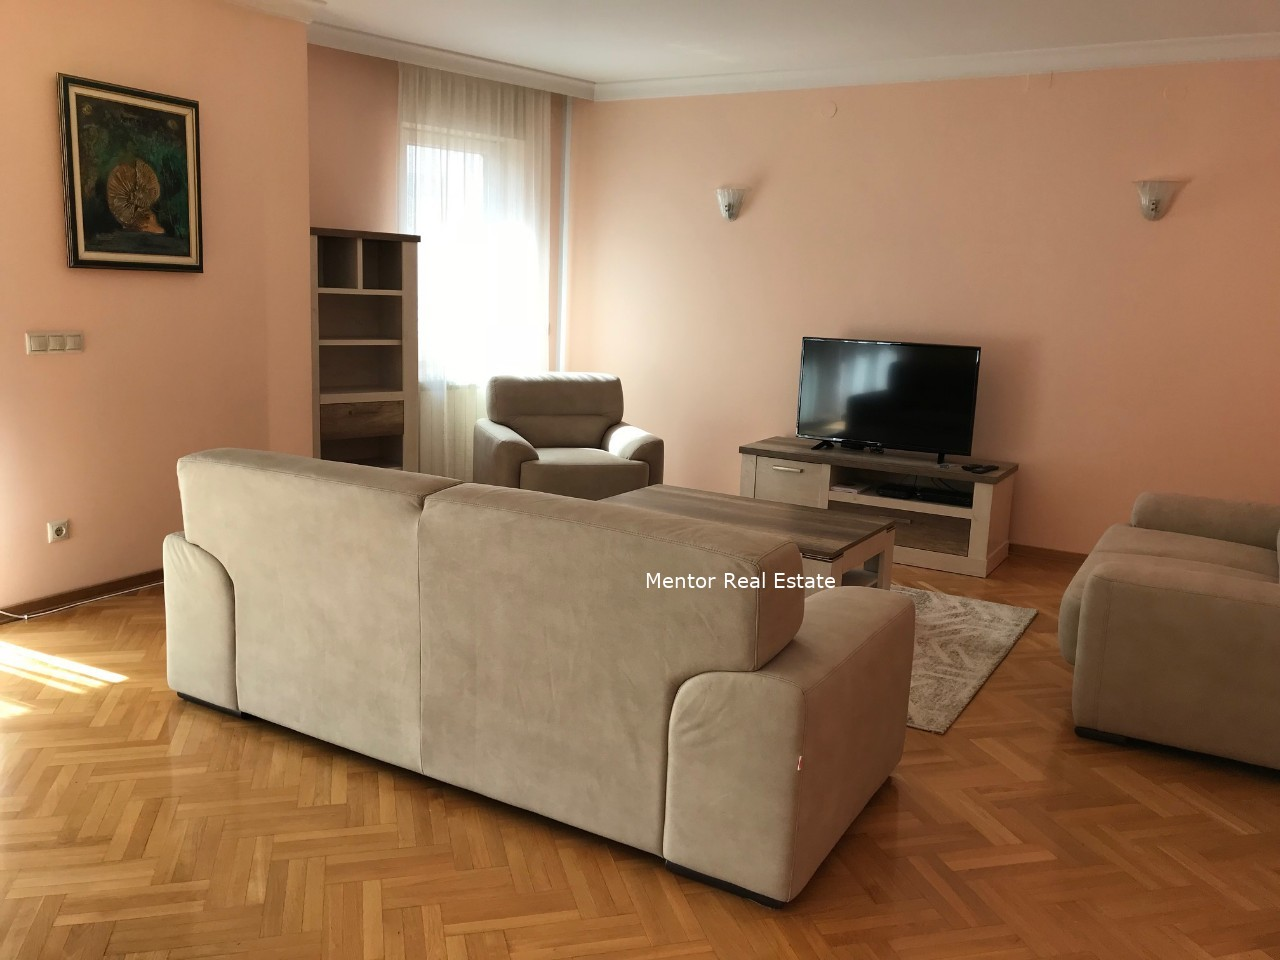 Vračar 160sqm luxury apartment for rent